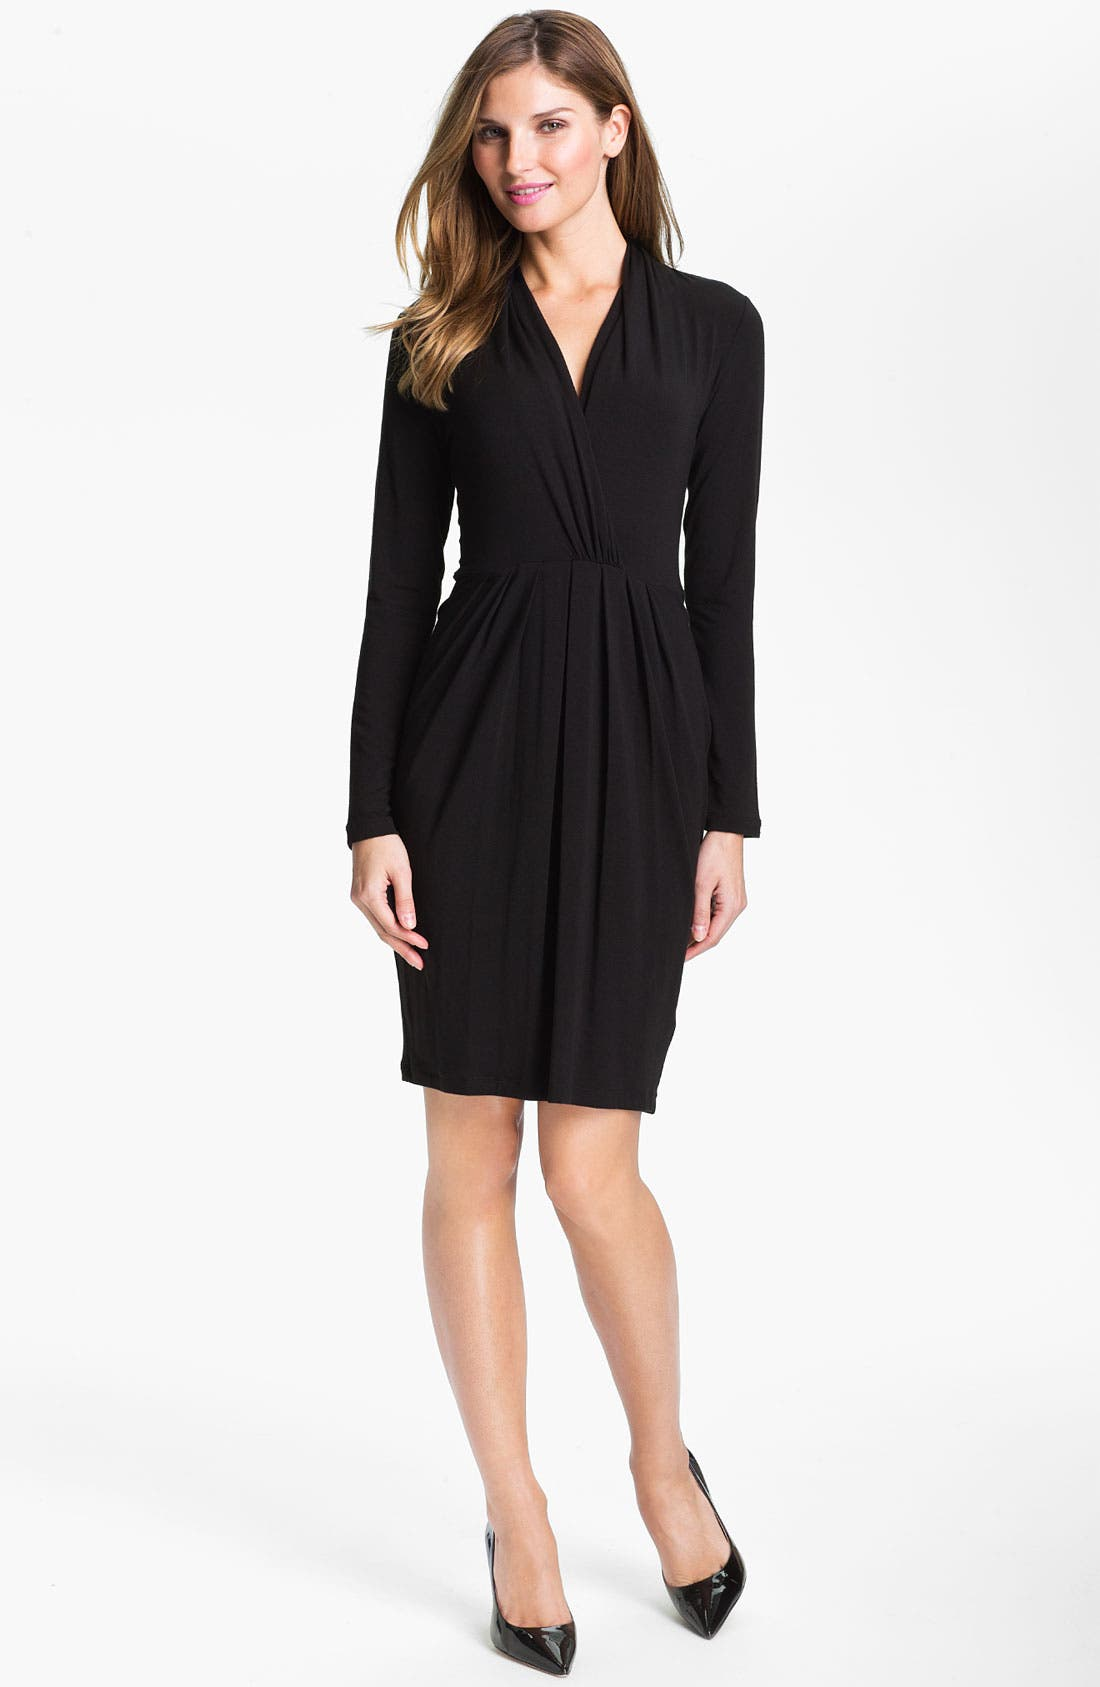 Alternate Image 1 Selected - Karen Kane Shirred Faux Wrap Dress (Online Exclusive)